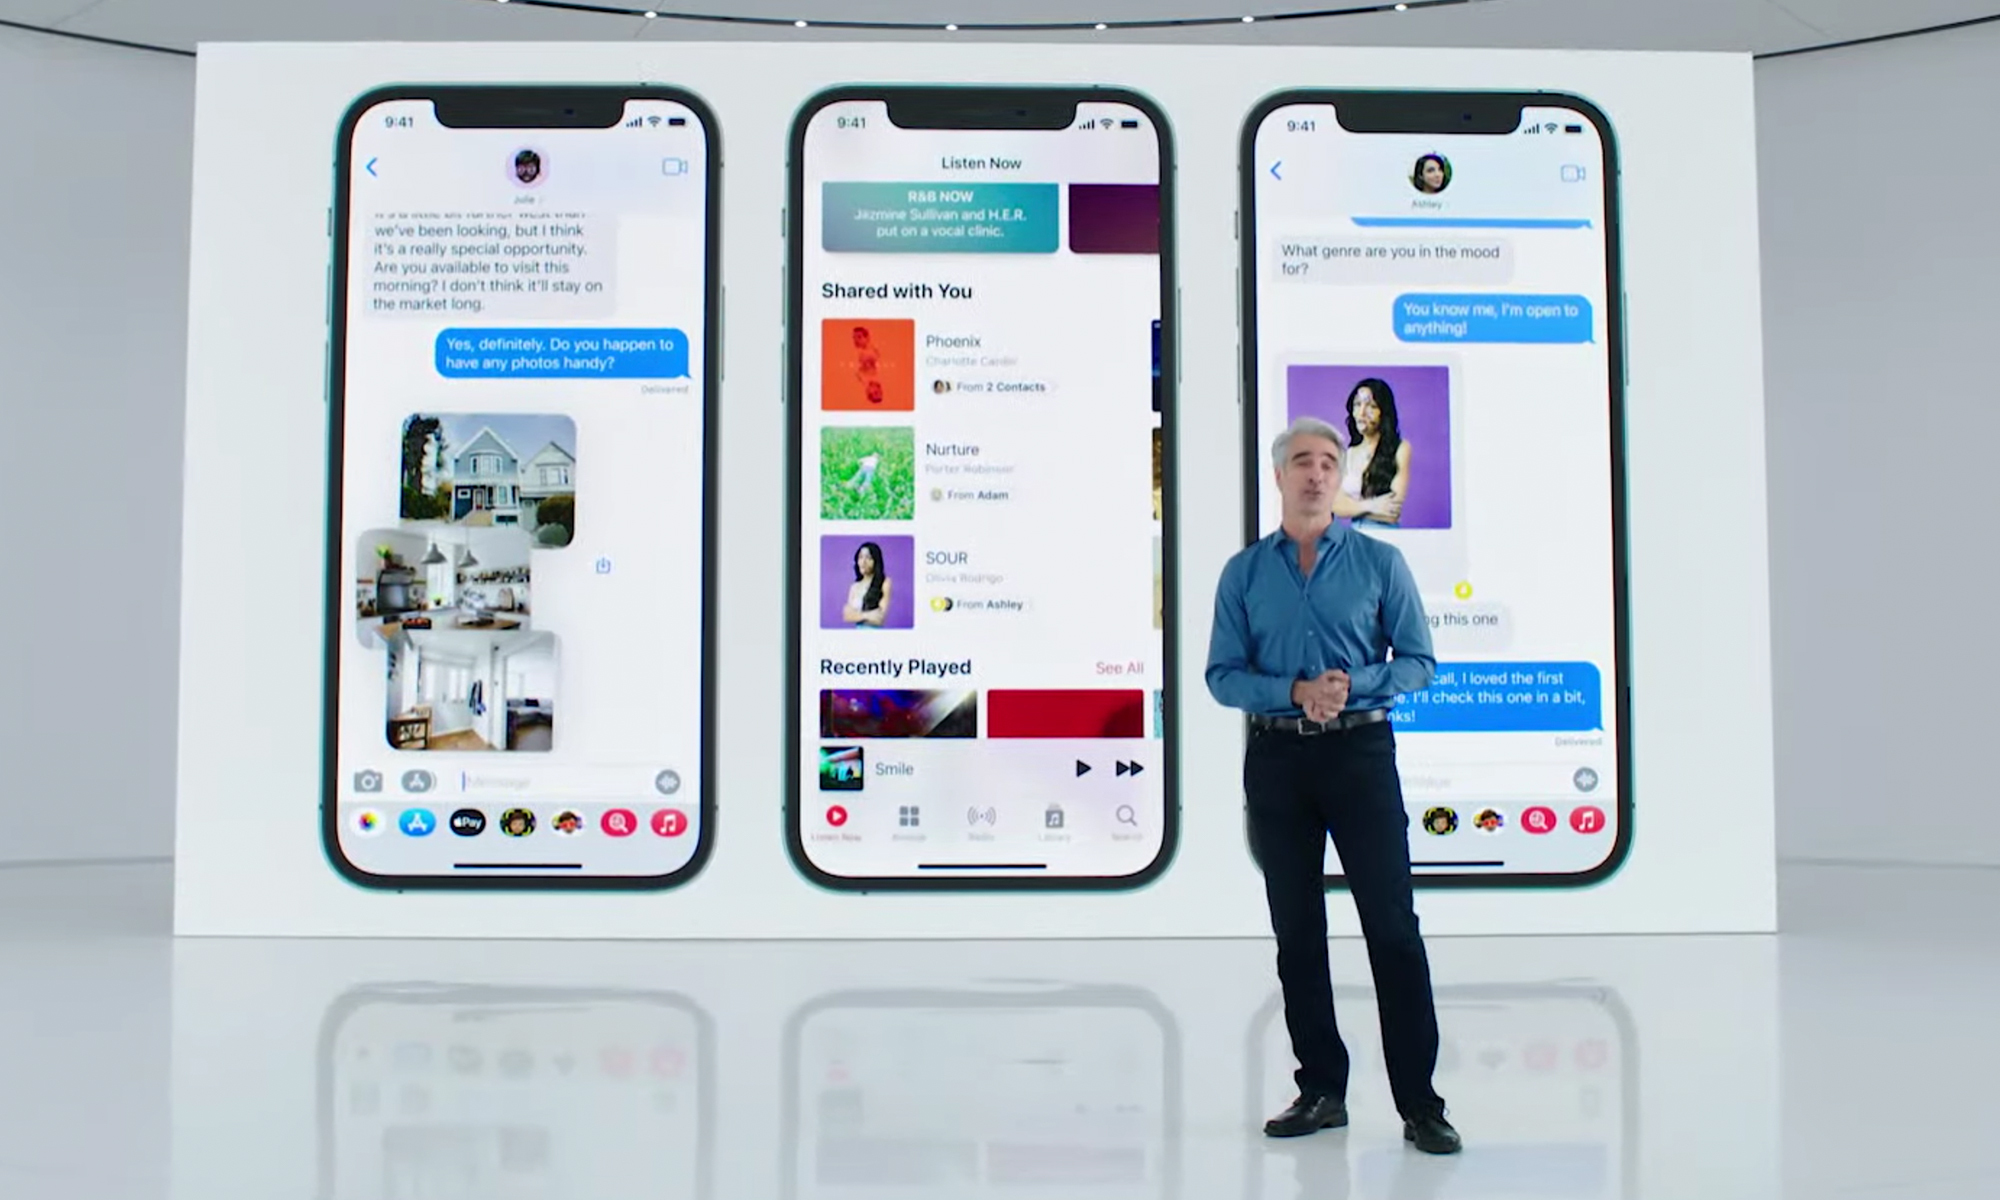 Apple Messages is getting a host of new sharing features   Engadget